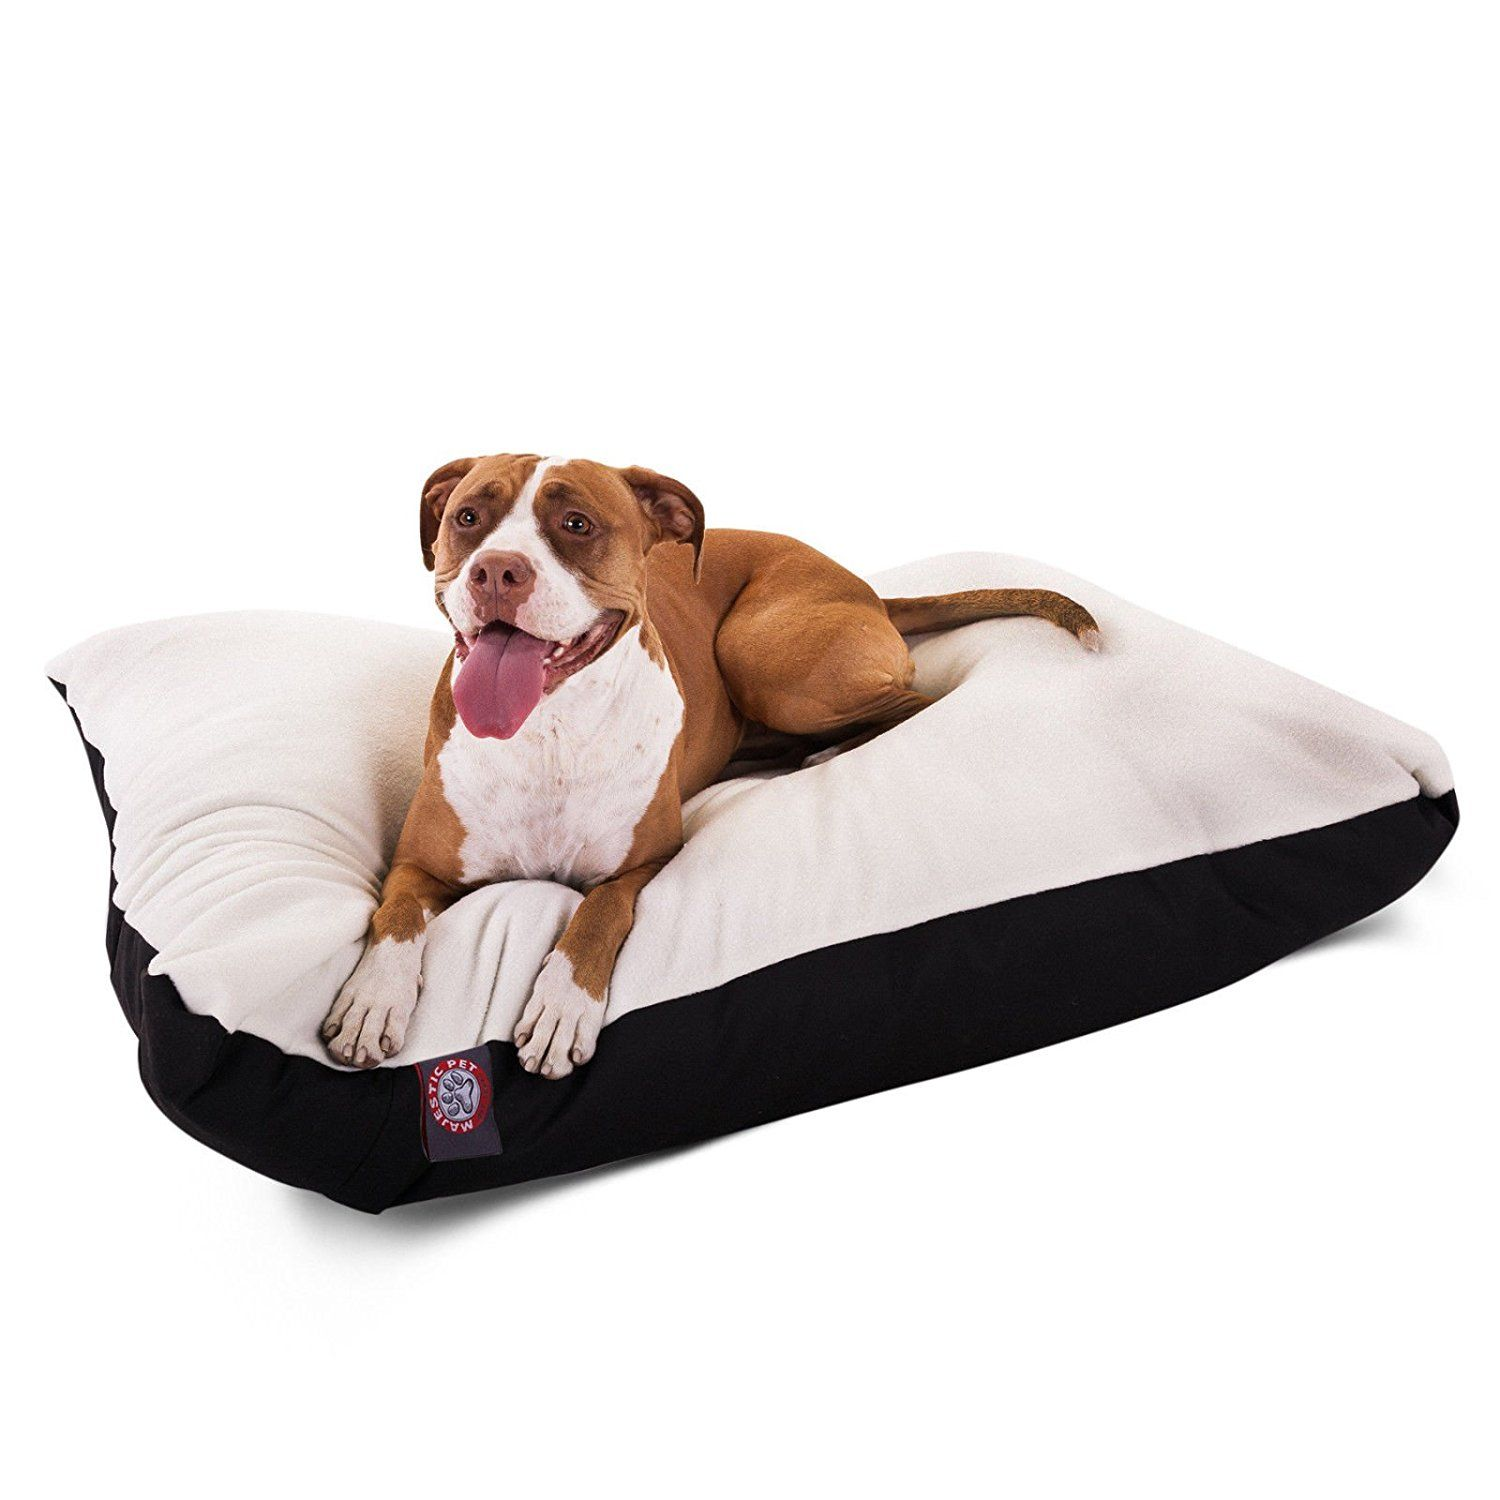 Large 36 X 48 Black Cat Dog Pet Bed Mat Made In The Usa Made With Faux Sheepskin Machine Washable Removable Cover Dog Pet Beds Dog Bed Large Majestic Pet